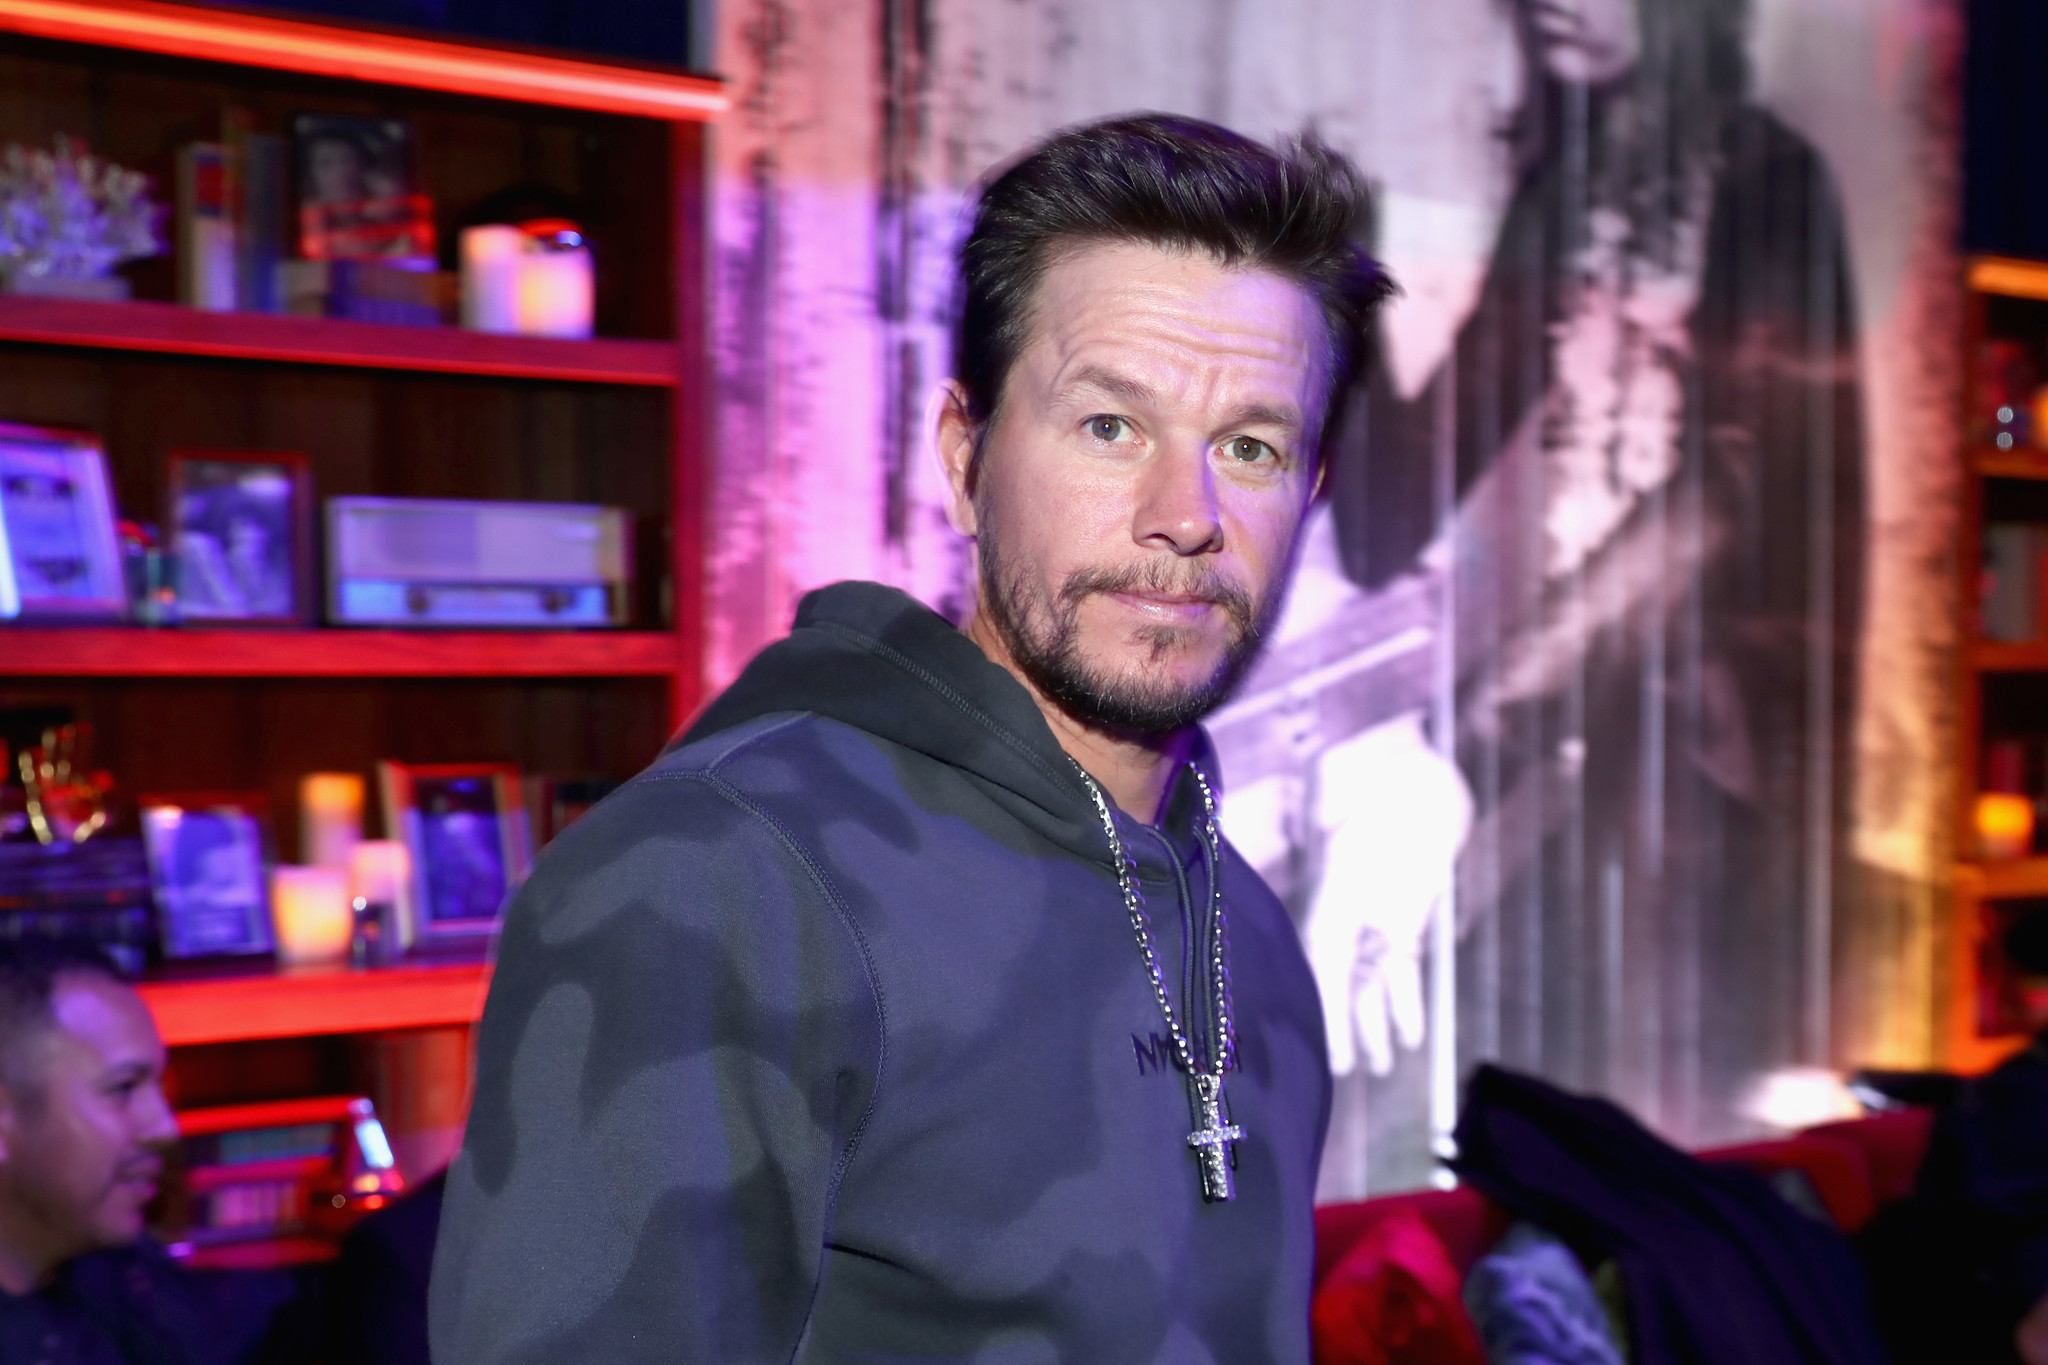 SEE IT: Mark Wahlberg's daughter gives him makeover amid coronavirus quarantine: 'This is what's happening now'